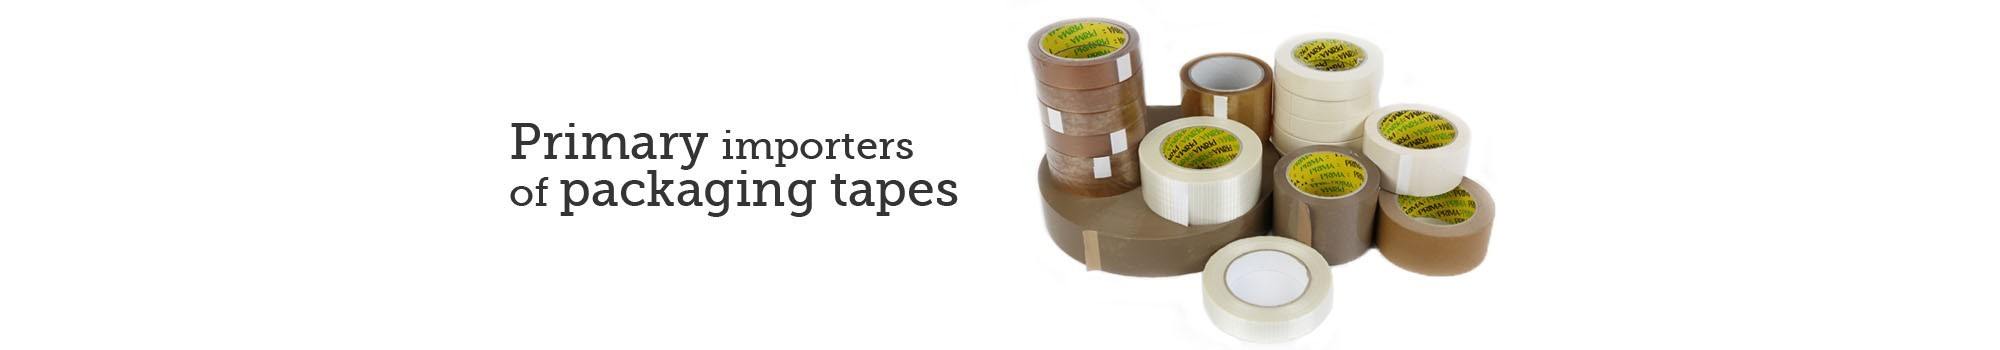 packaging tape banner